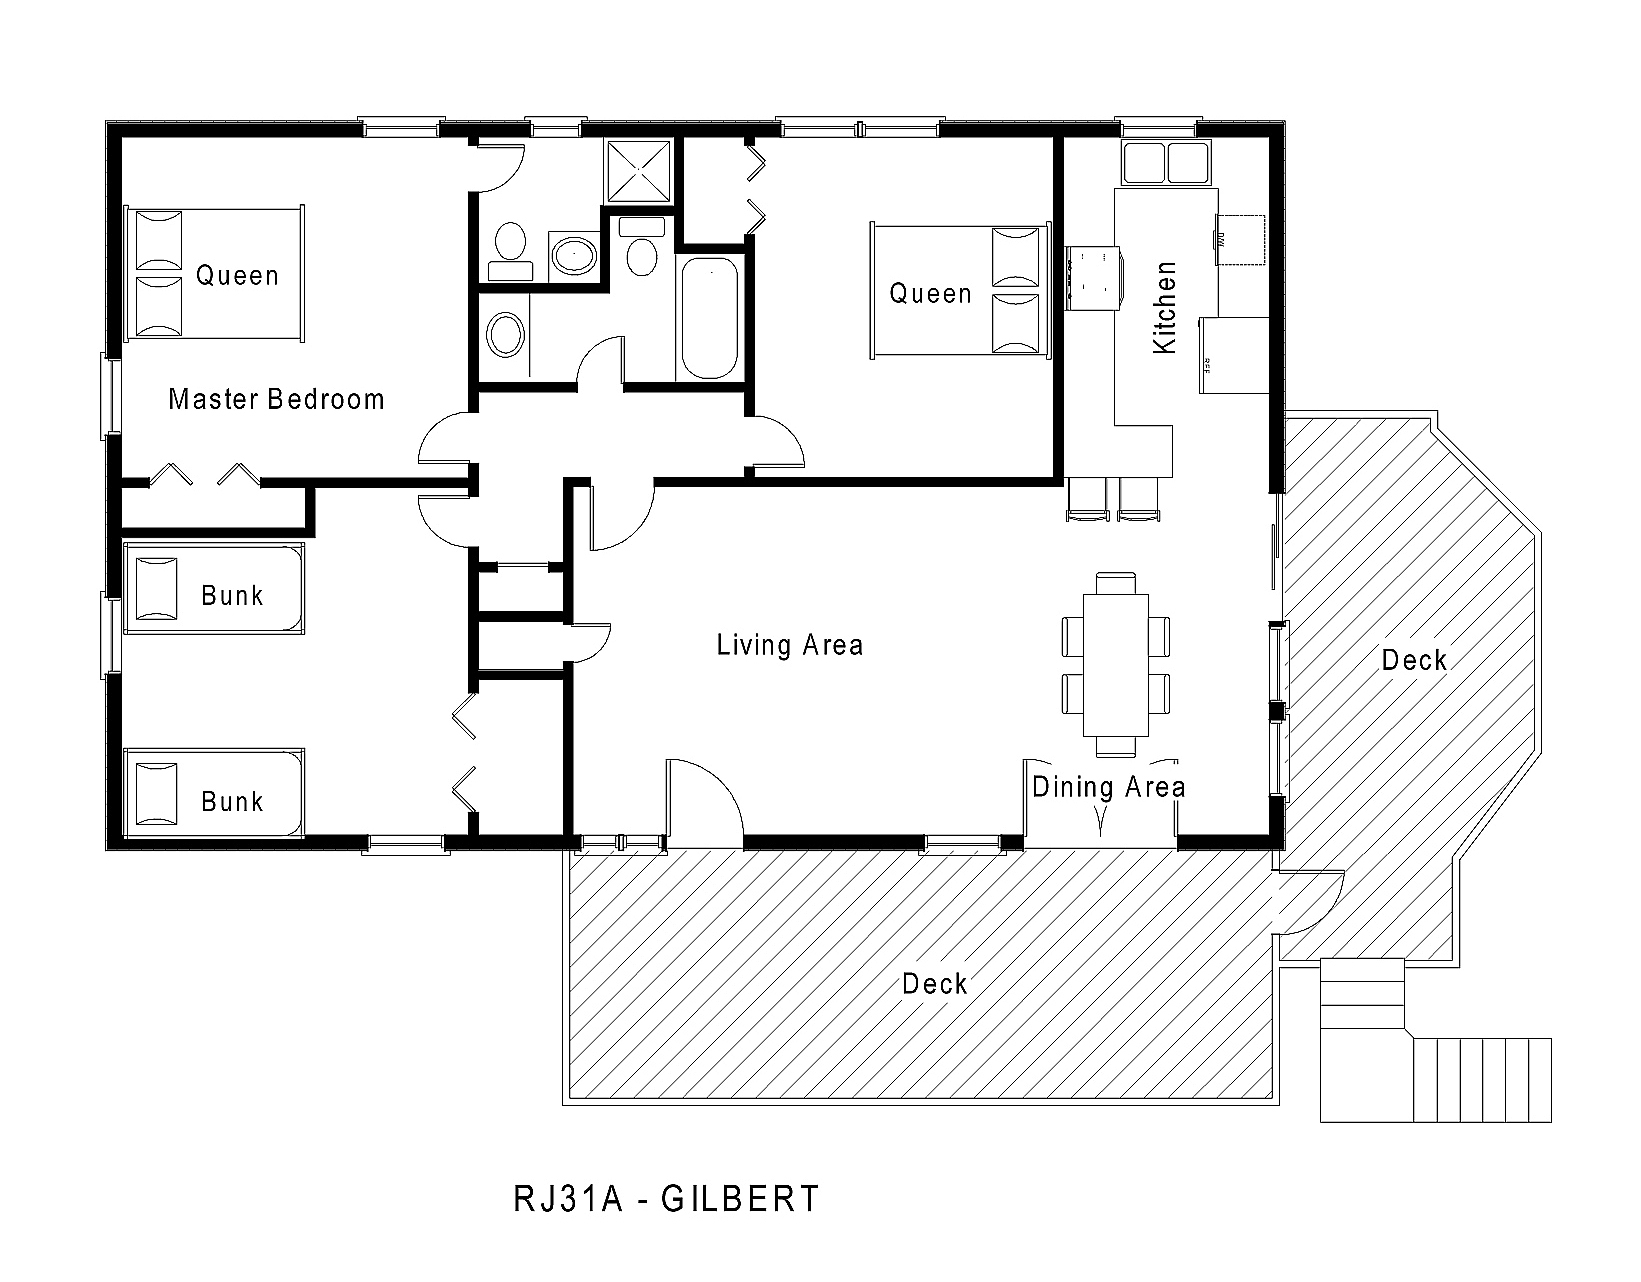 Rj31a gilbert floorplan level midgett realty for One story floorplans